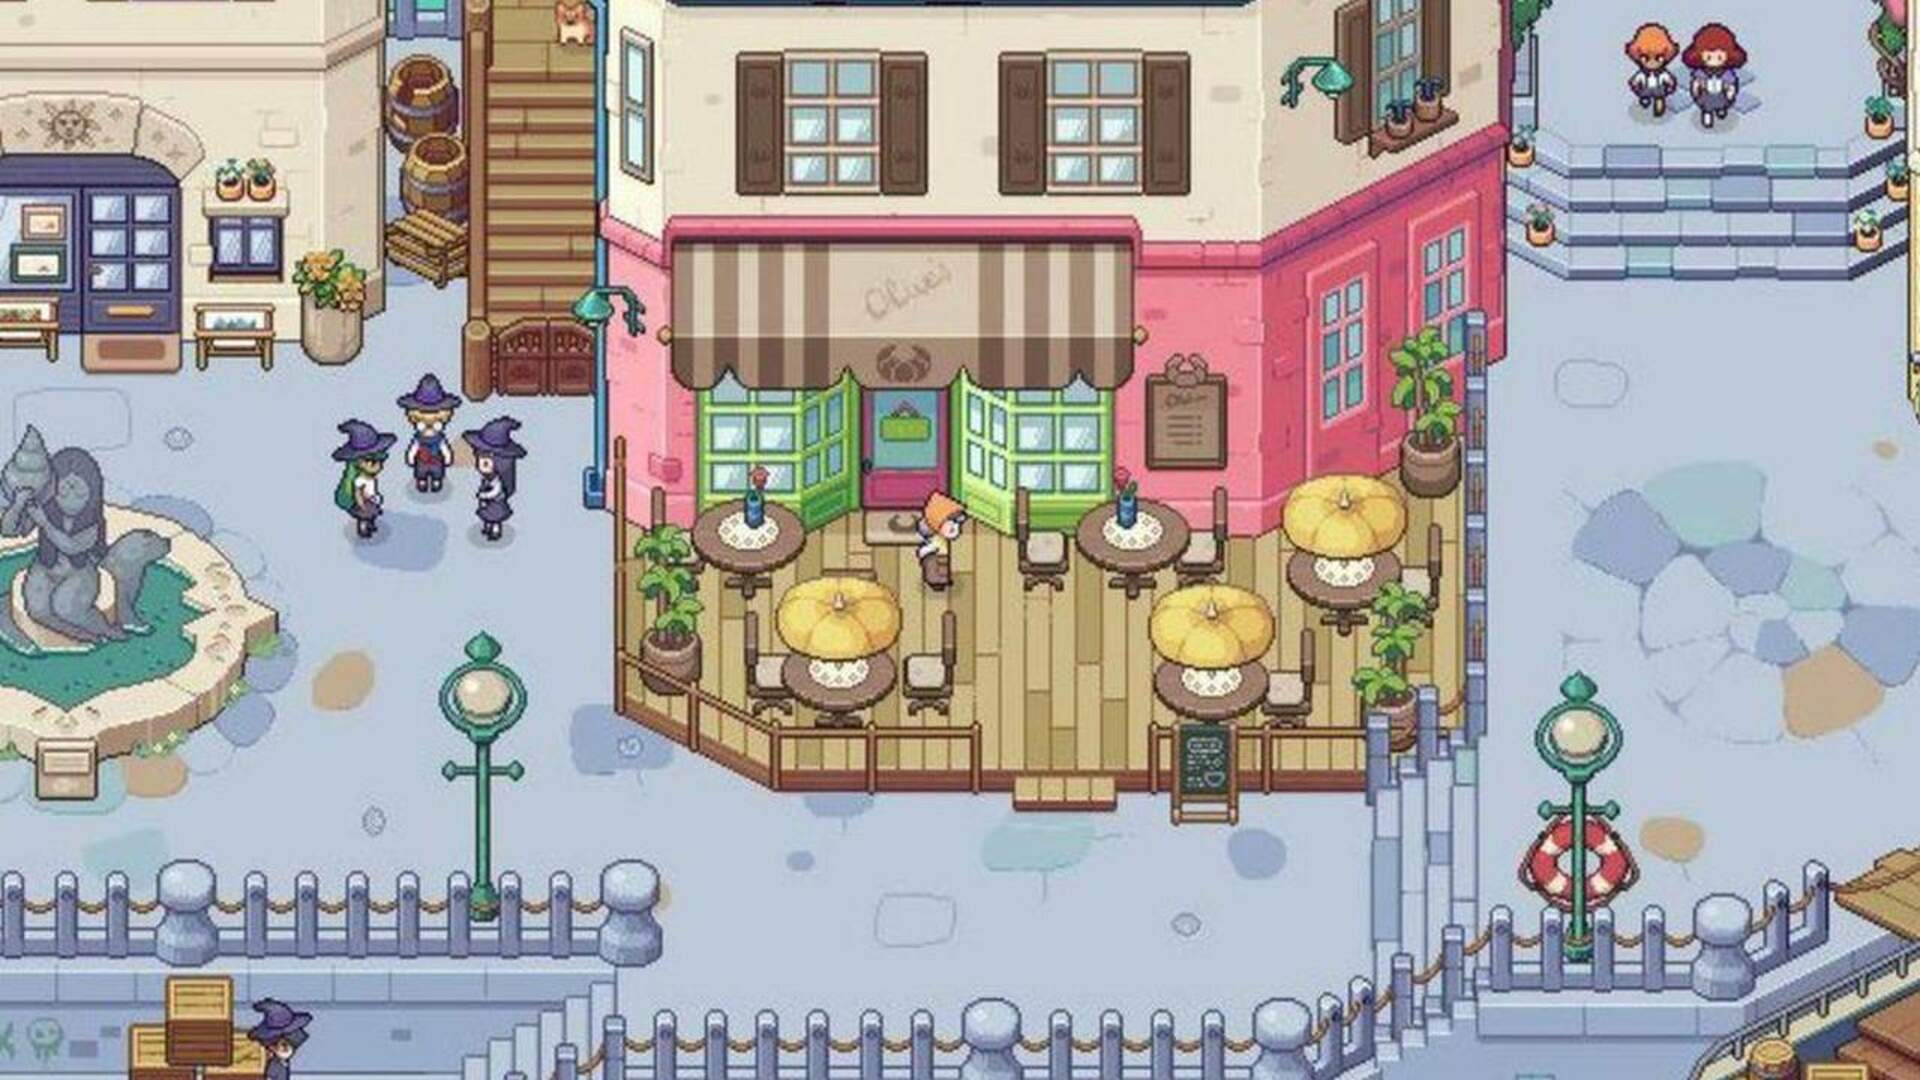 Witchbrook Dev Tweets Design Docs Revealing New Details on the Charming Magical School Sim